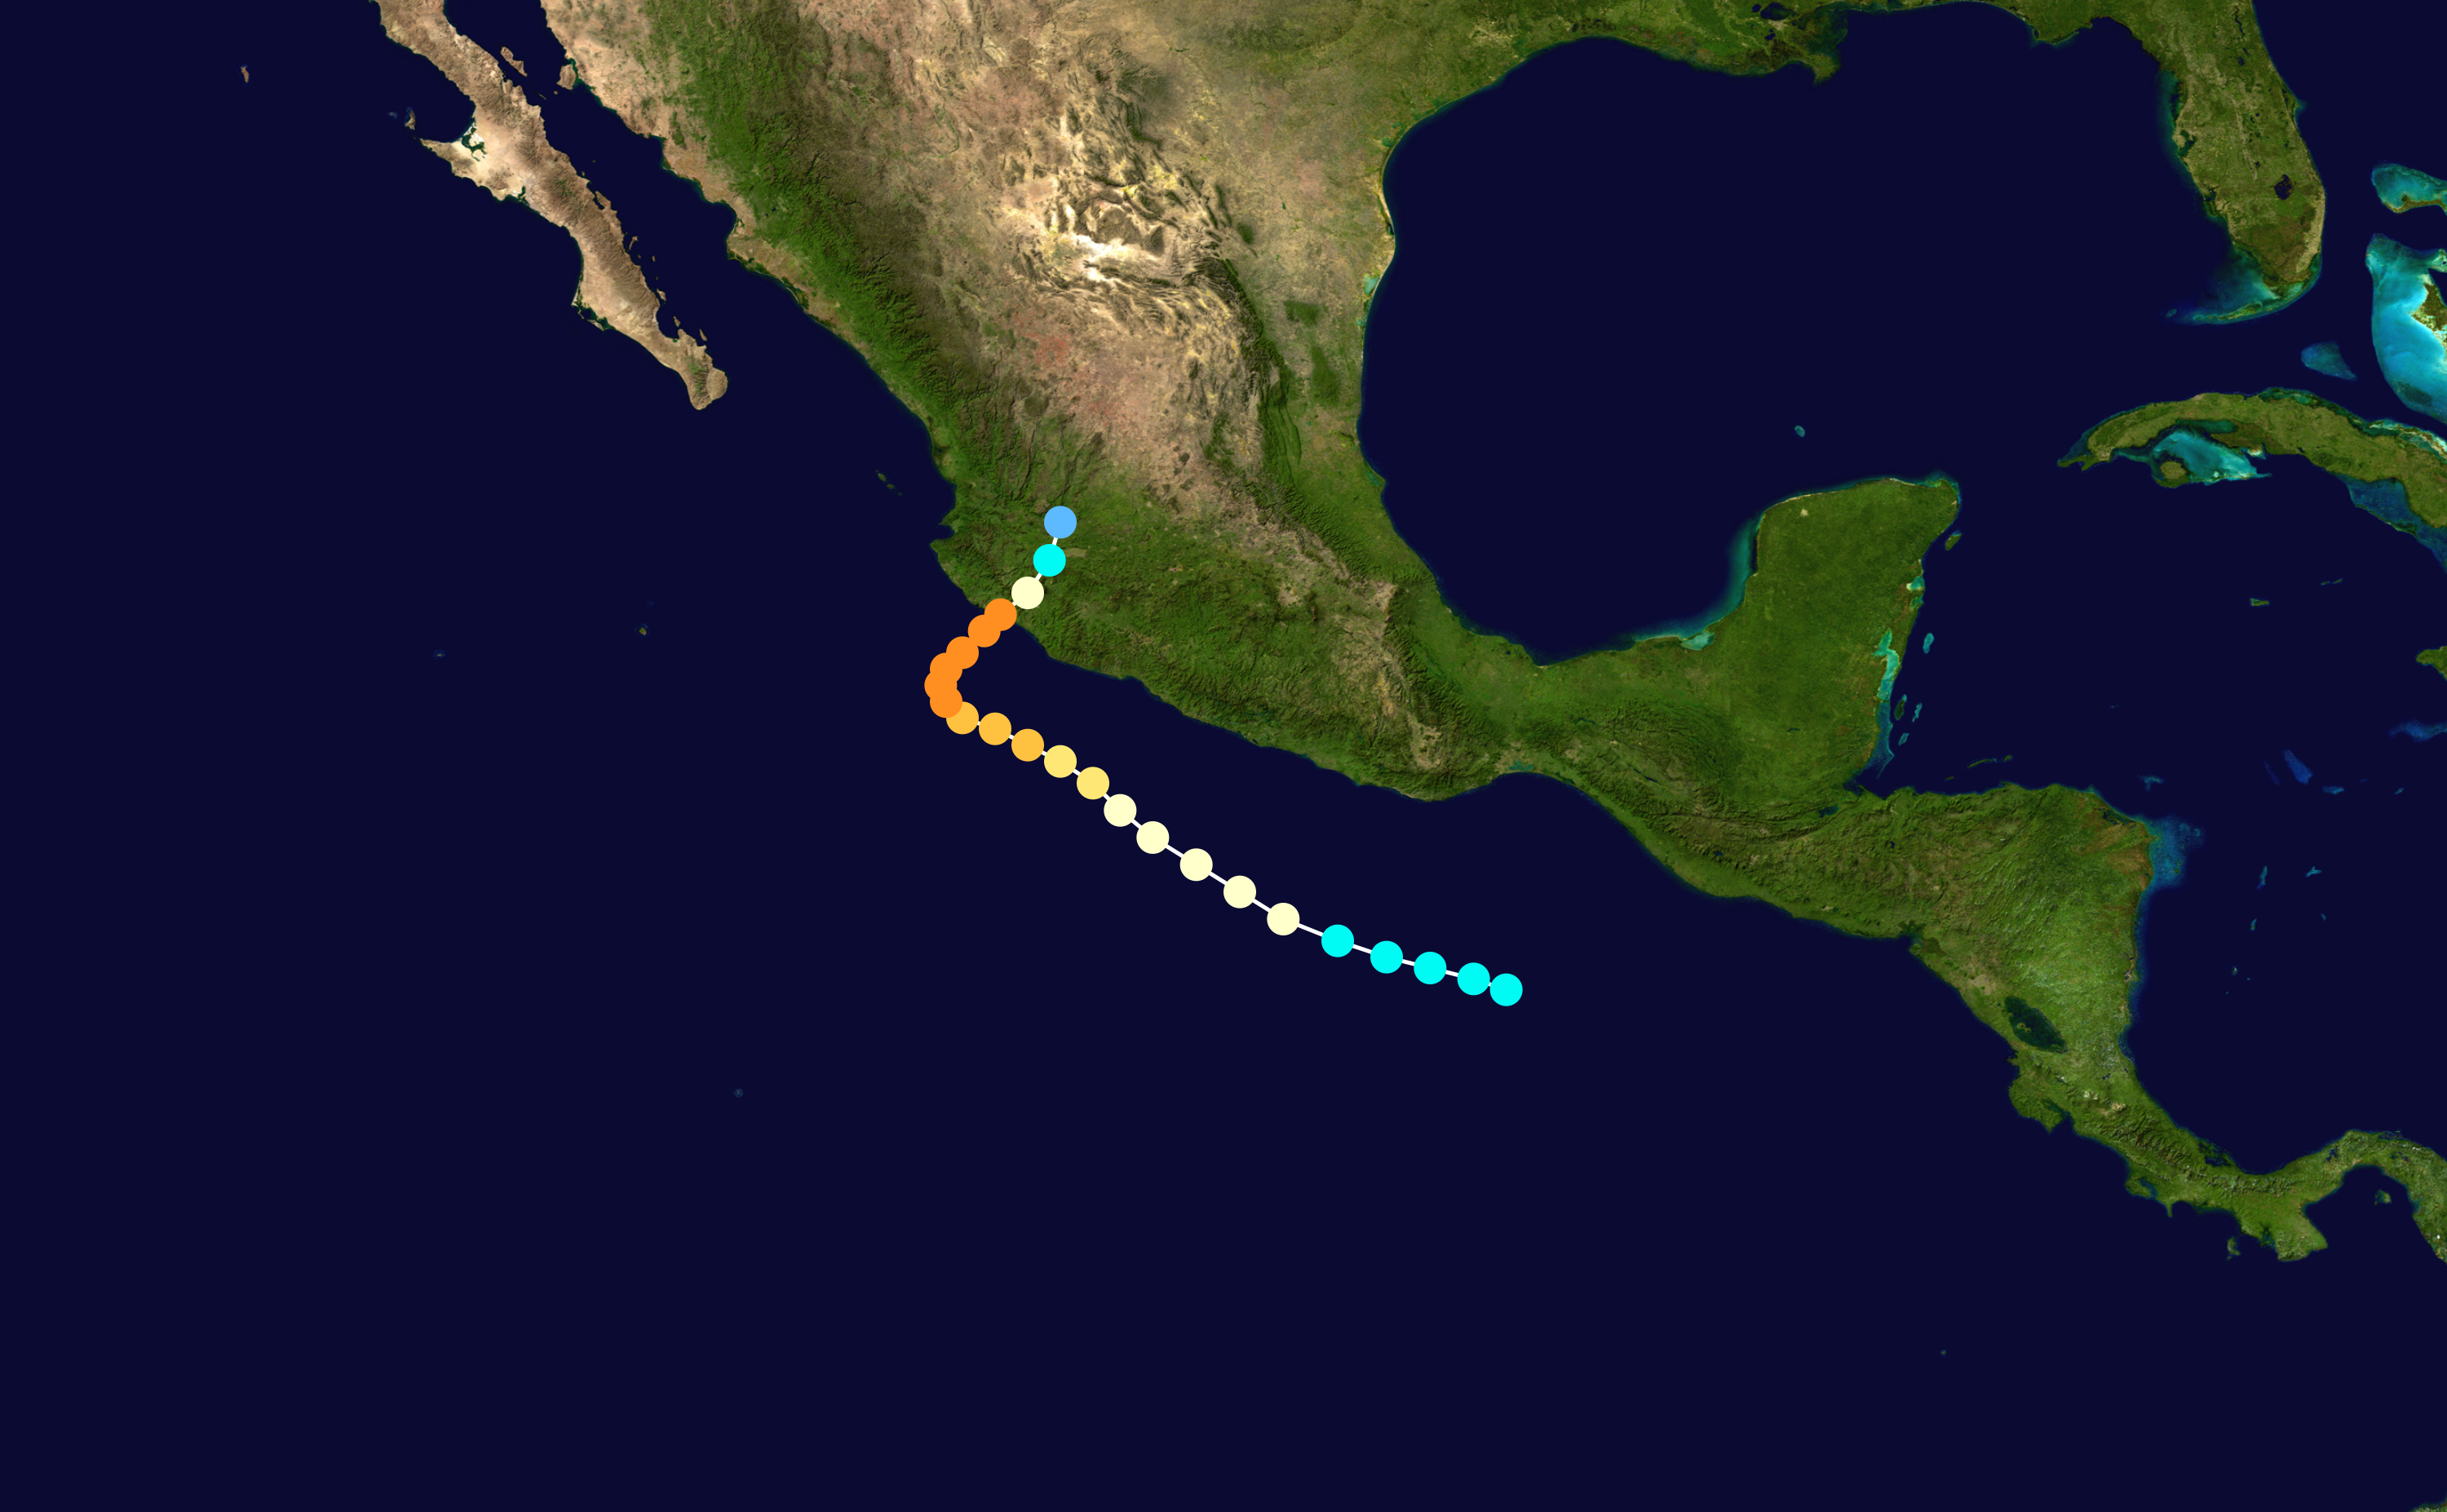 Mexico hurricane http://dbpedia.org/resource/1959_Mexico_hurricane